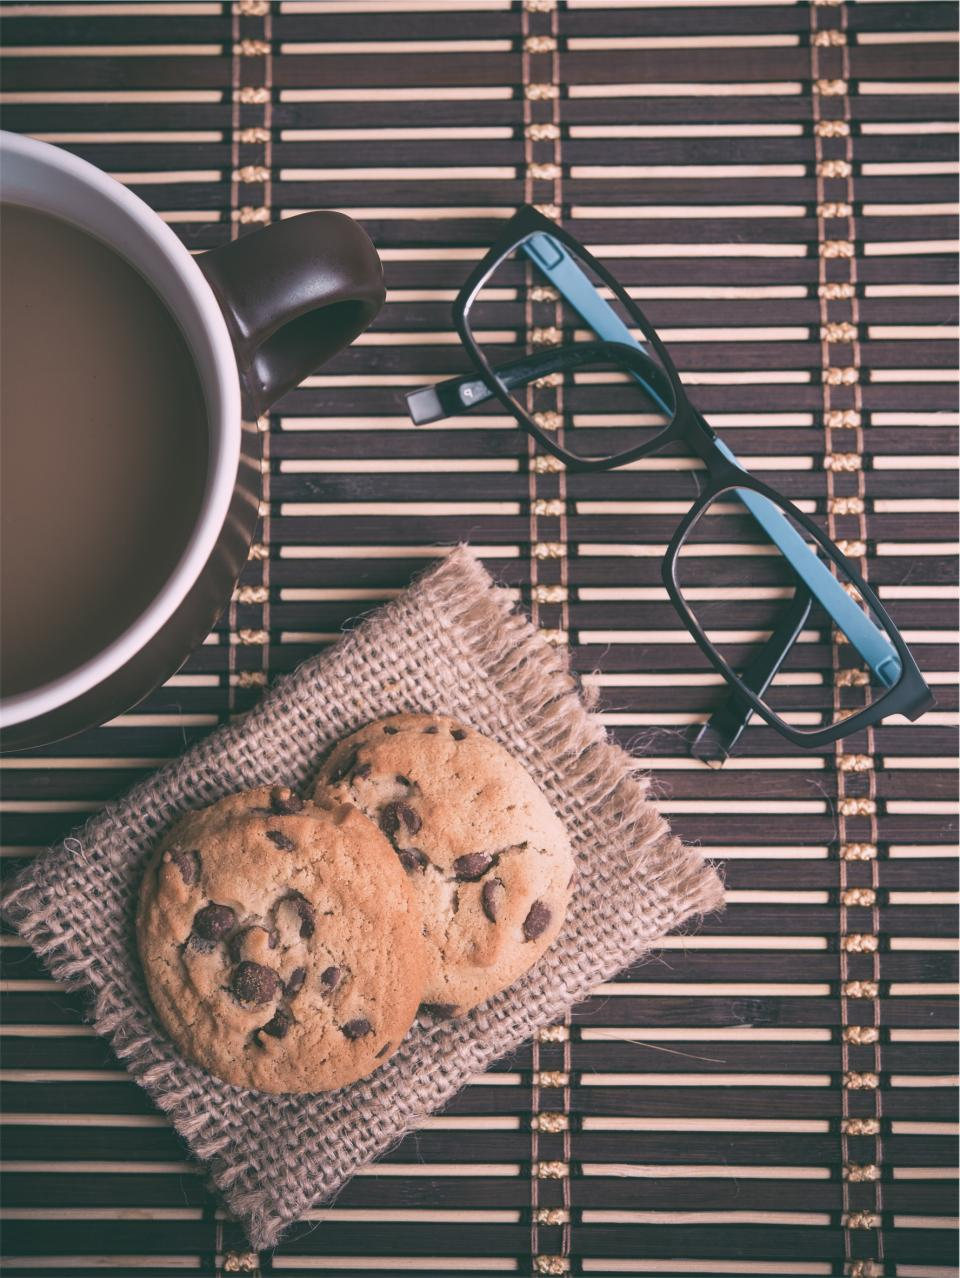 coffee, chocolate chip, cookies, eyeglasses, cup, mug, snack, food, dessert